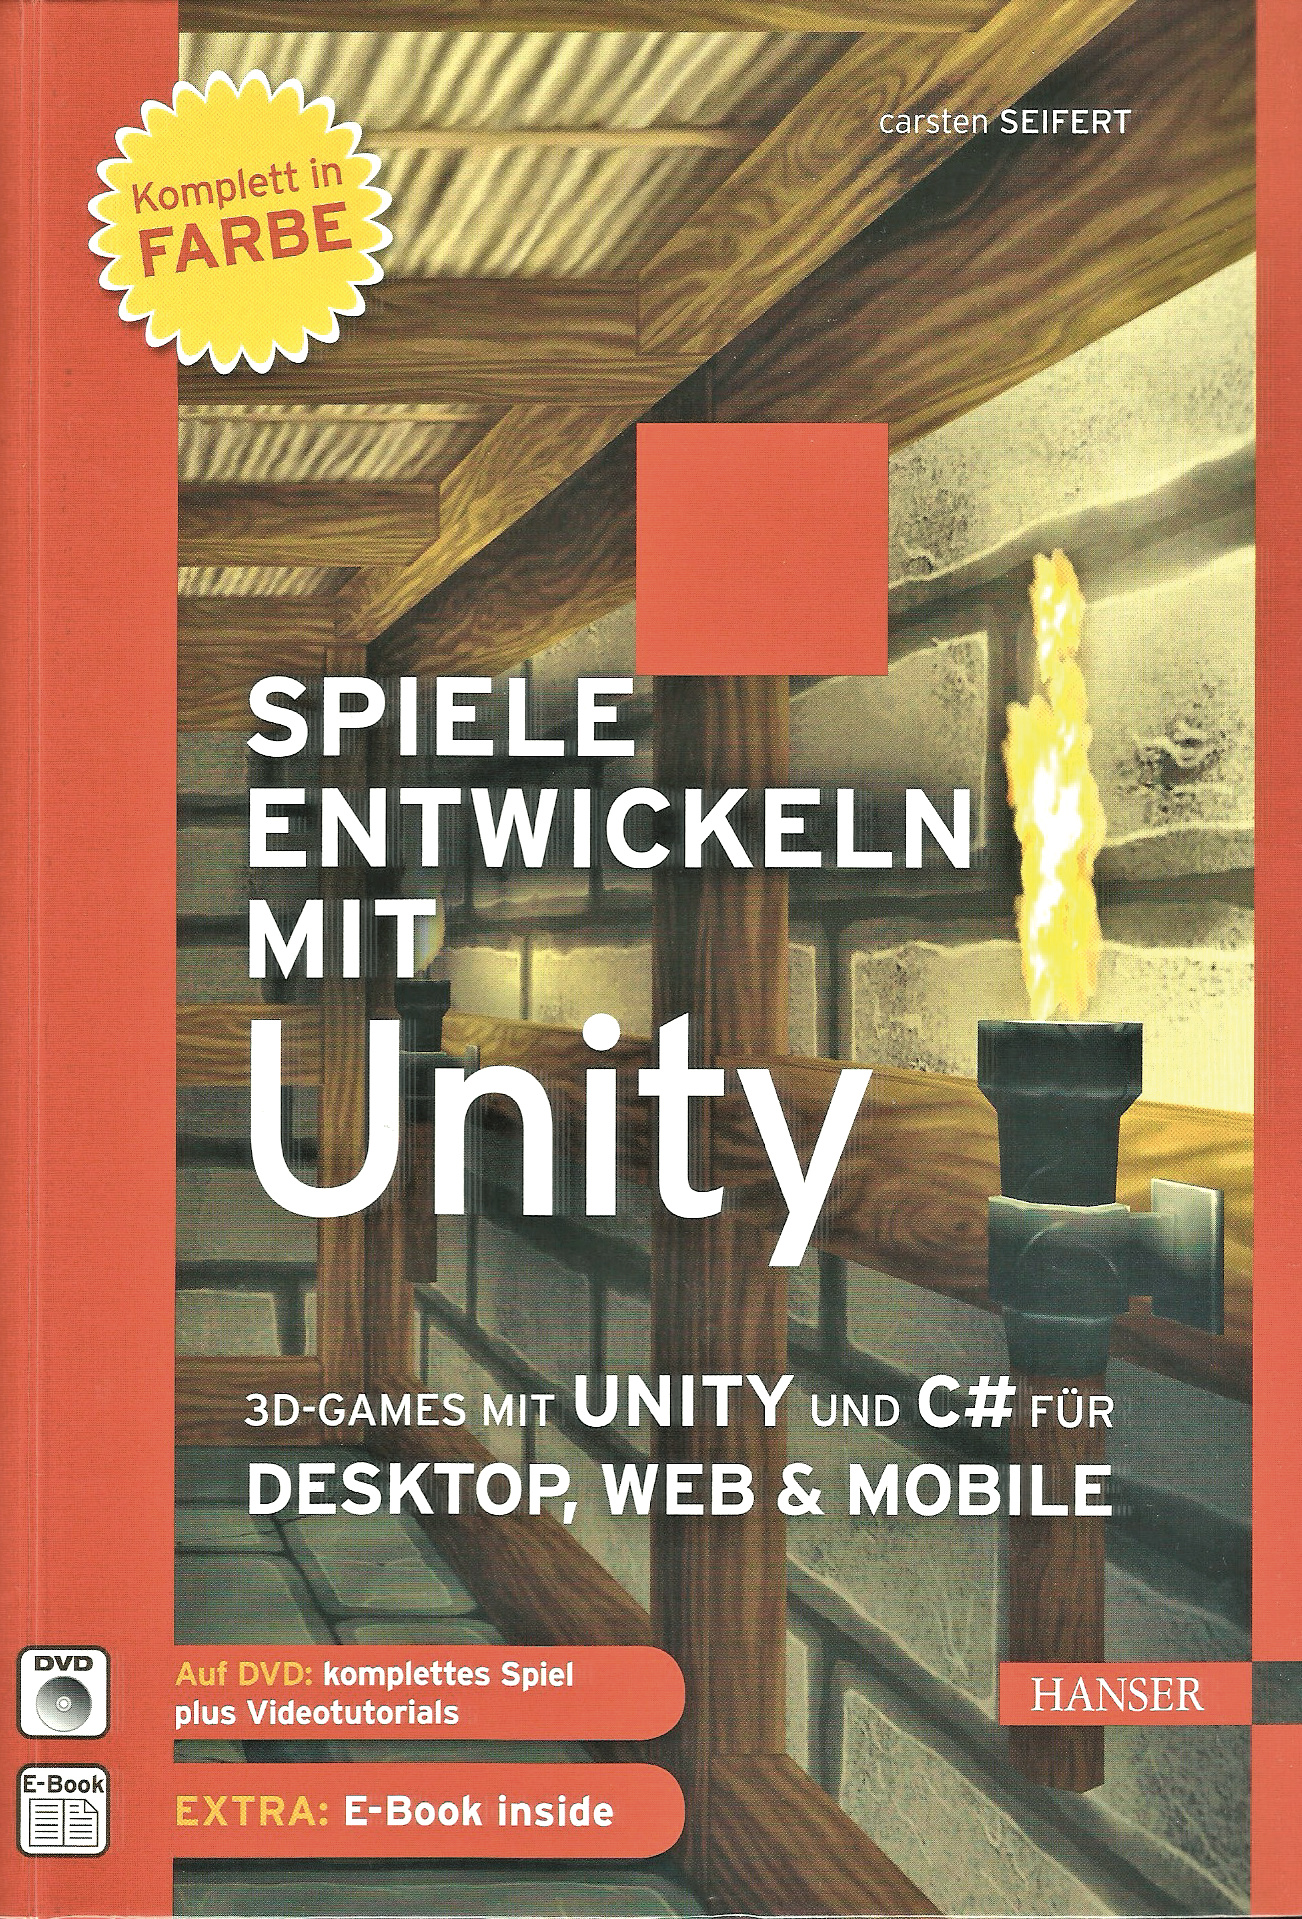 learning c# programming with unity 3d pdf